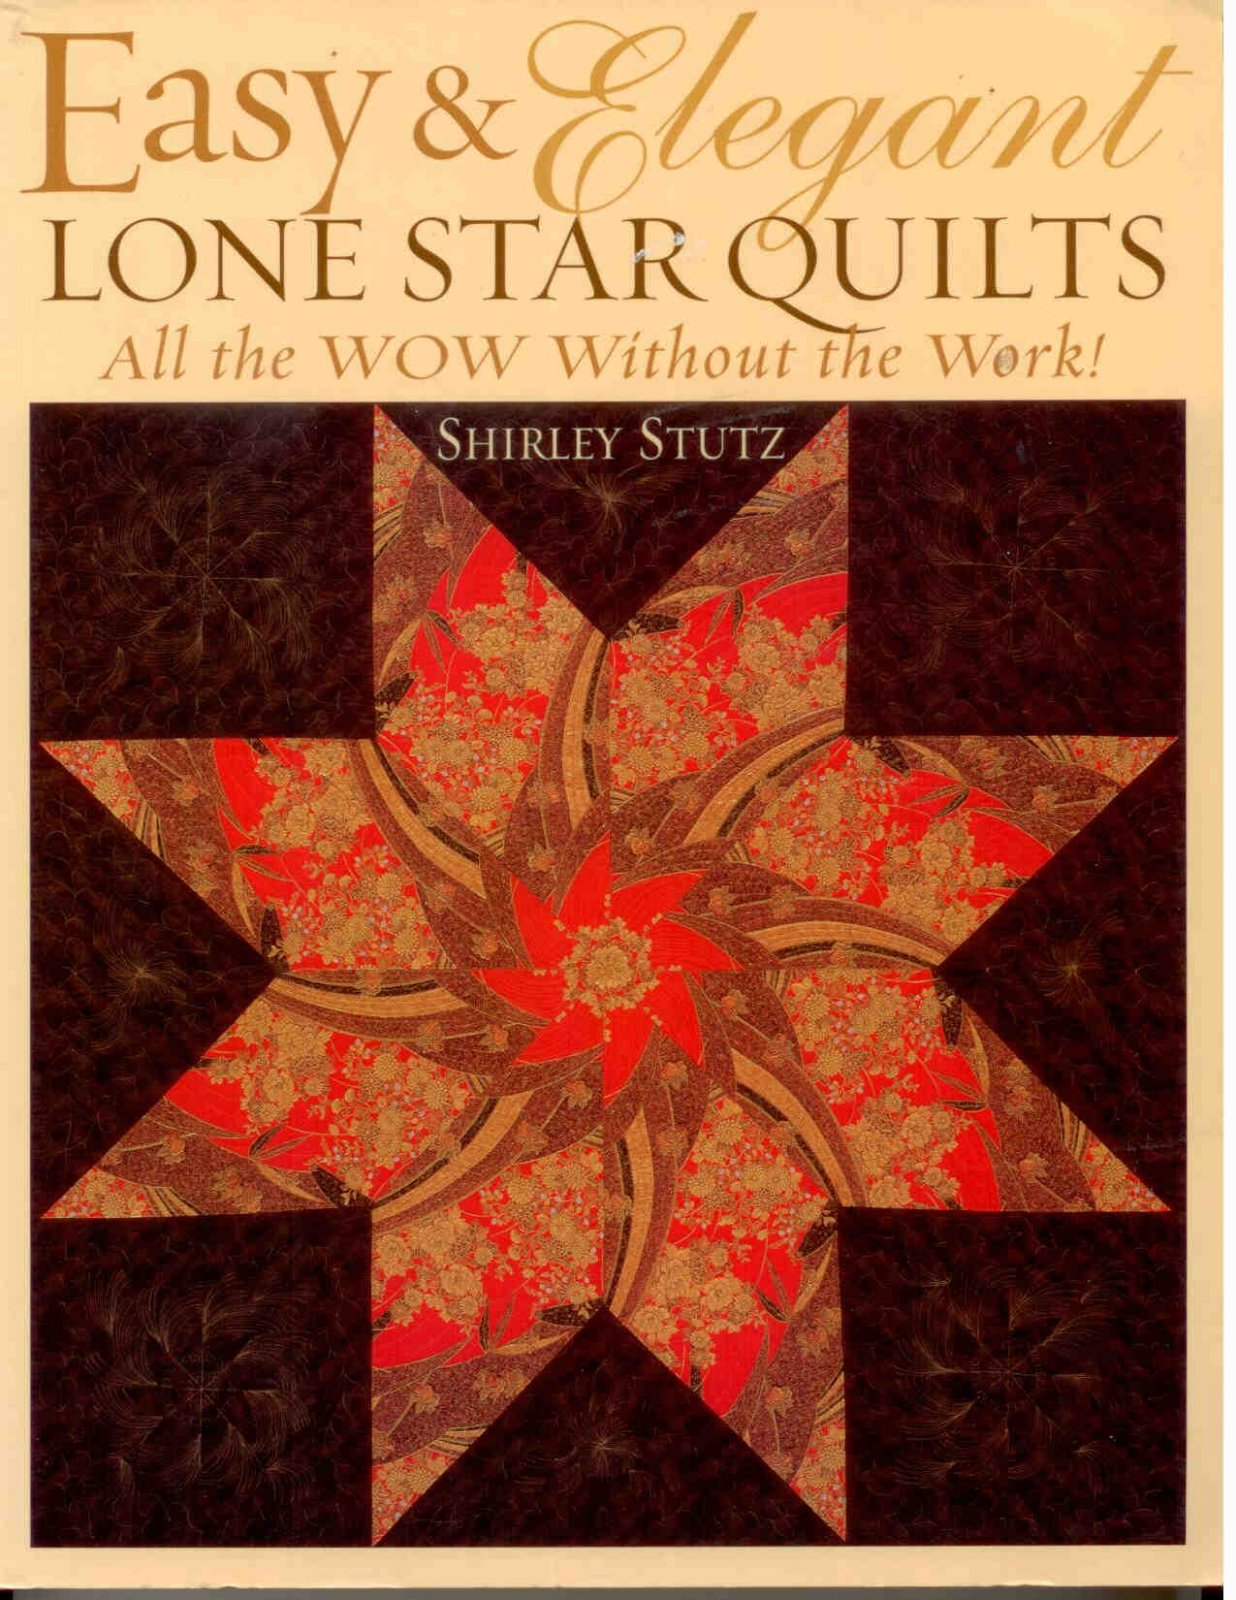 Easy & Elegant Lone Star Quilts Book